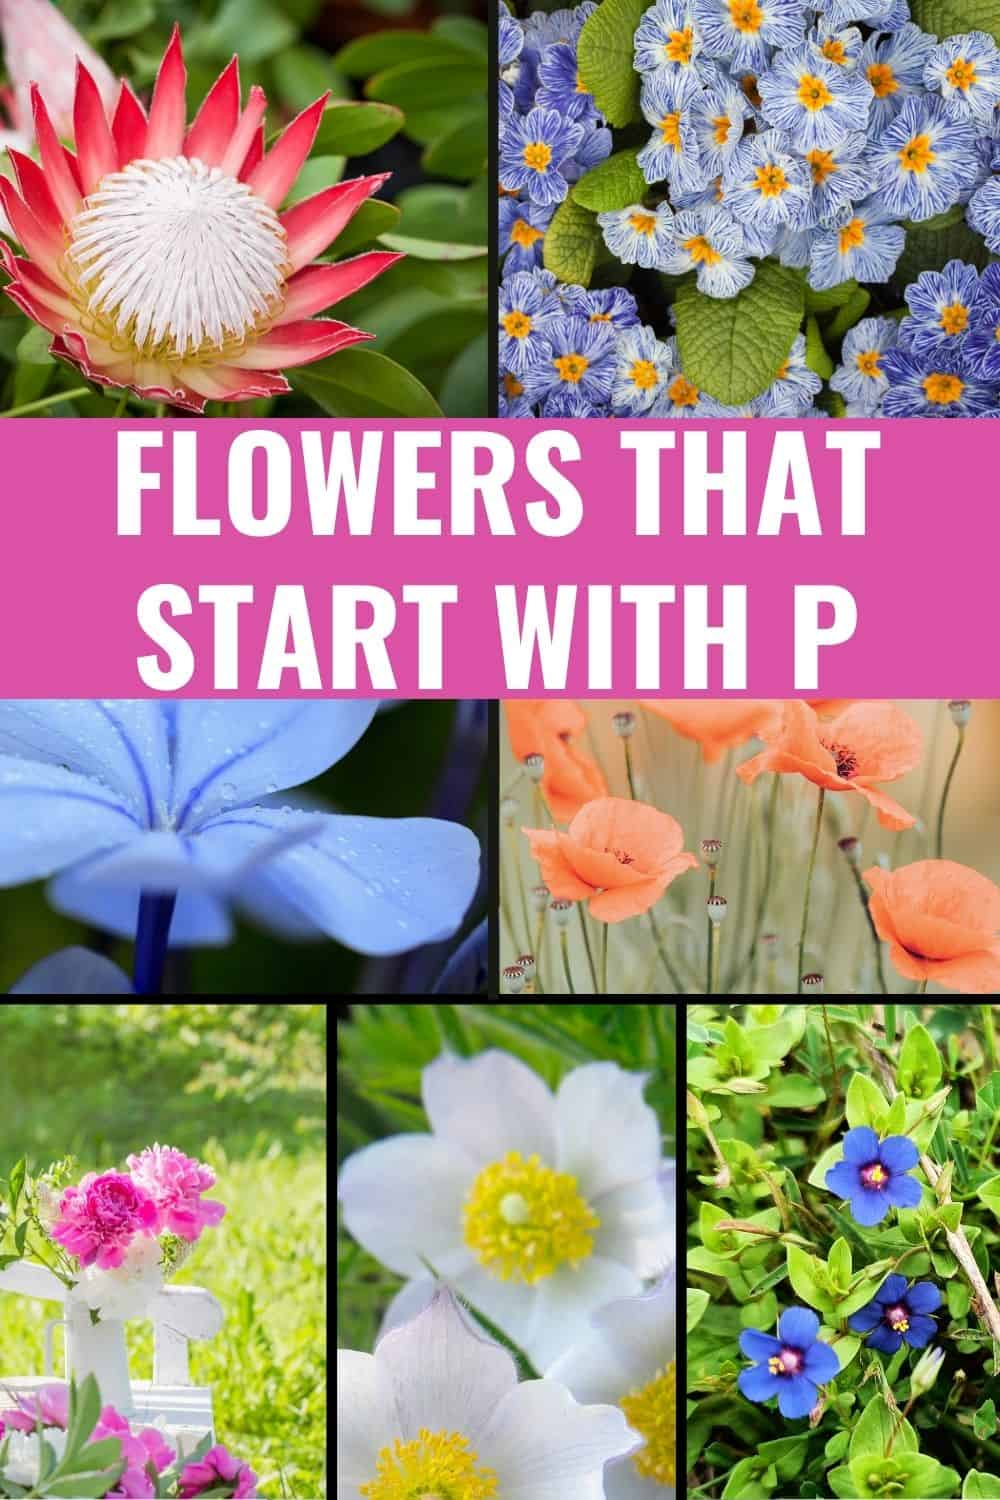 Flowers that start with p